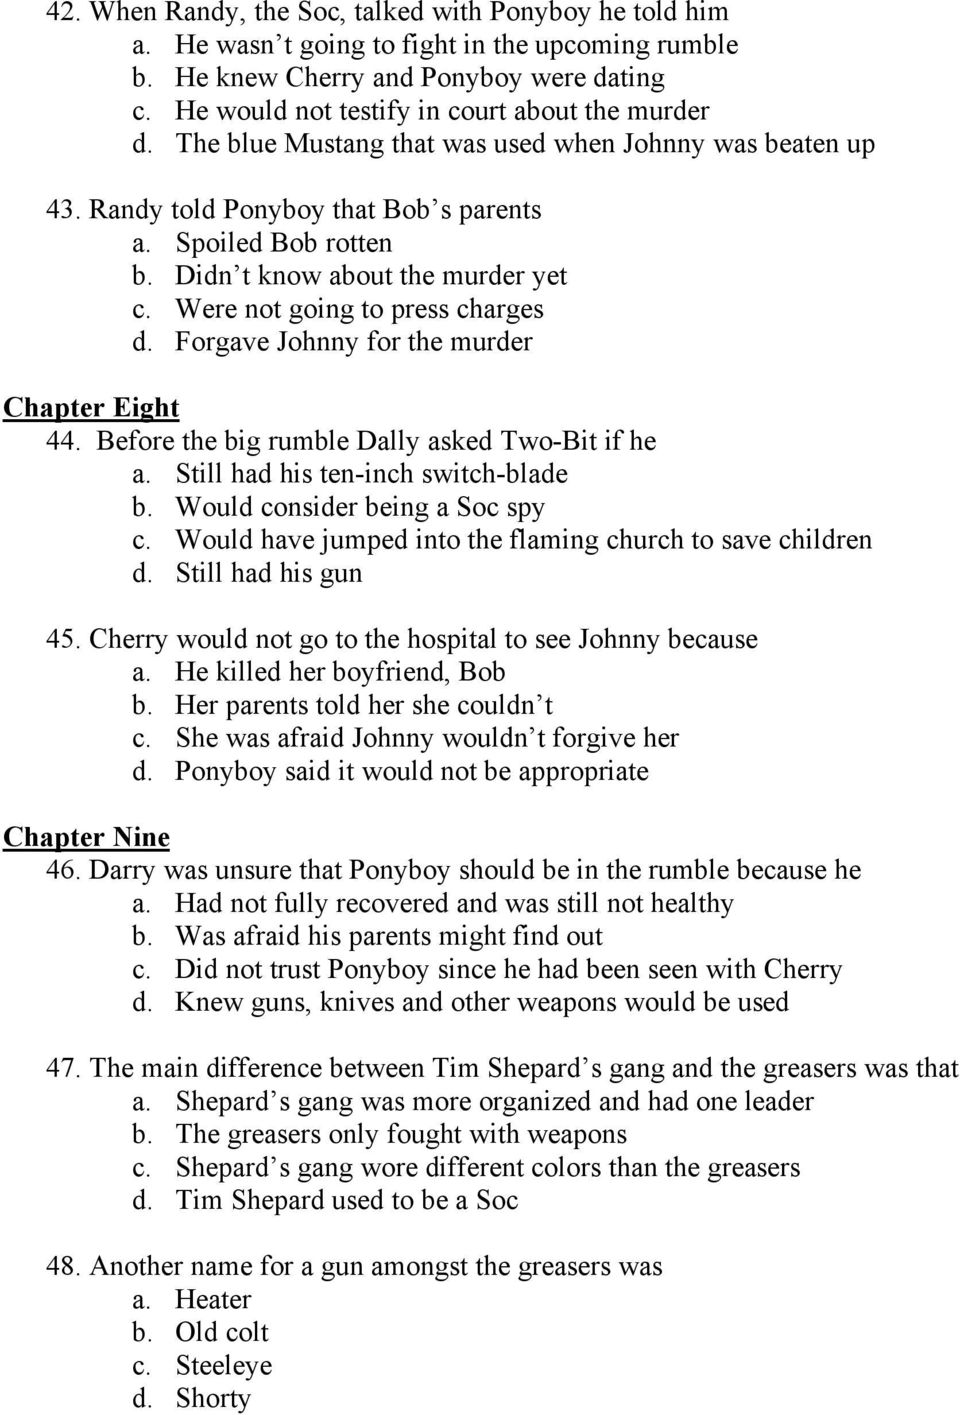 The Outsiders Multiple Choice Questions Arranged By